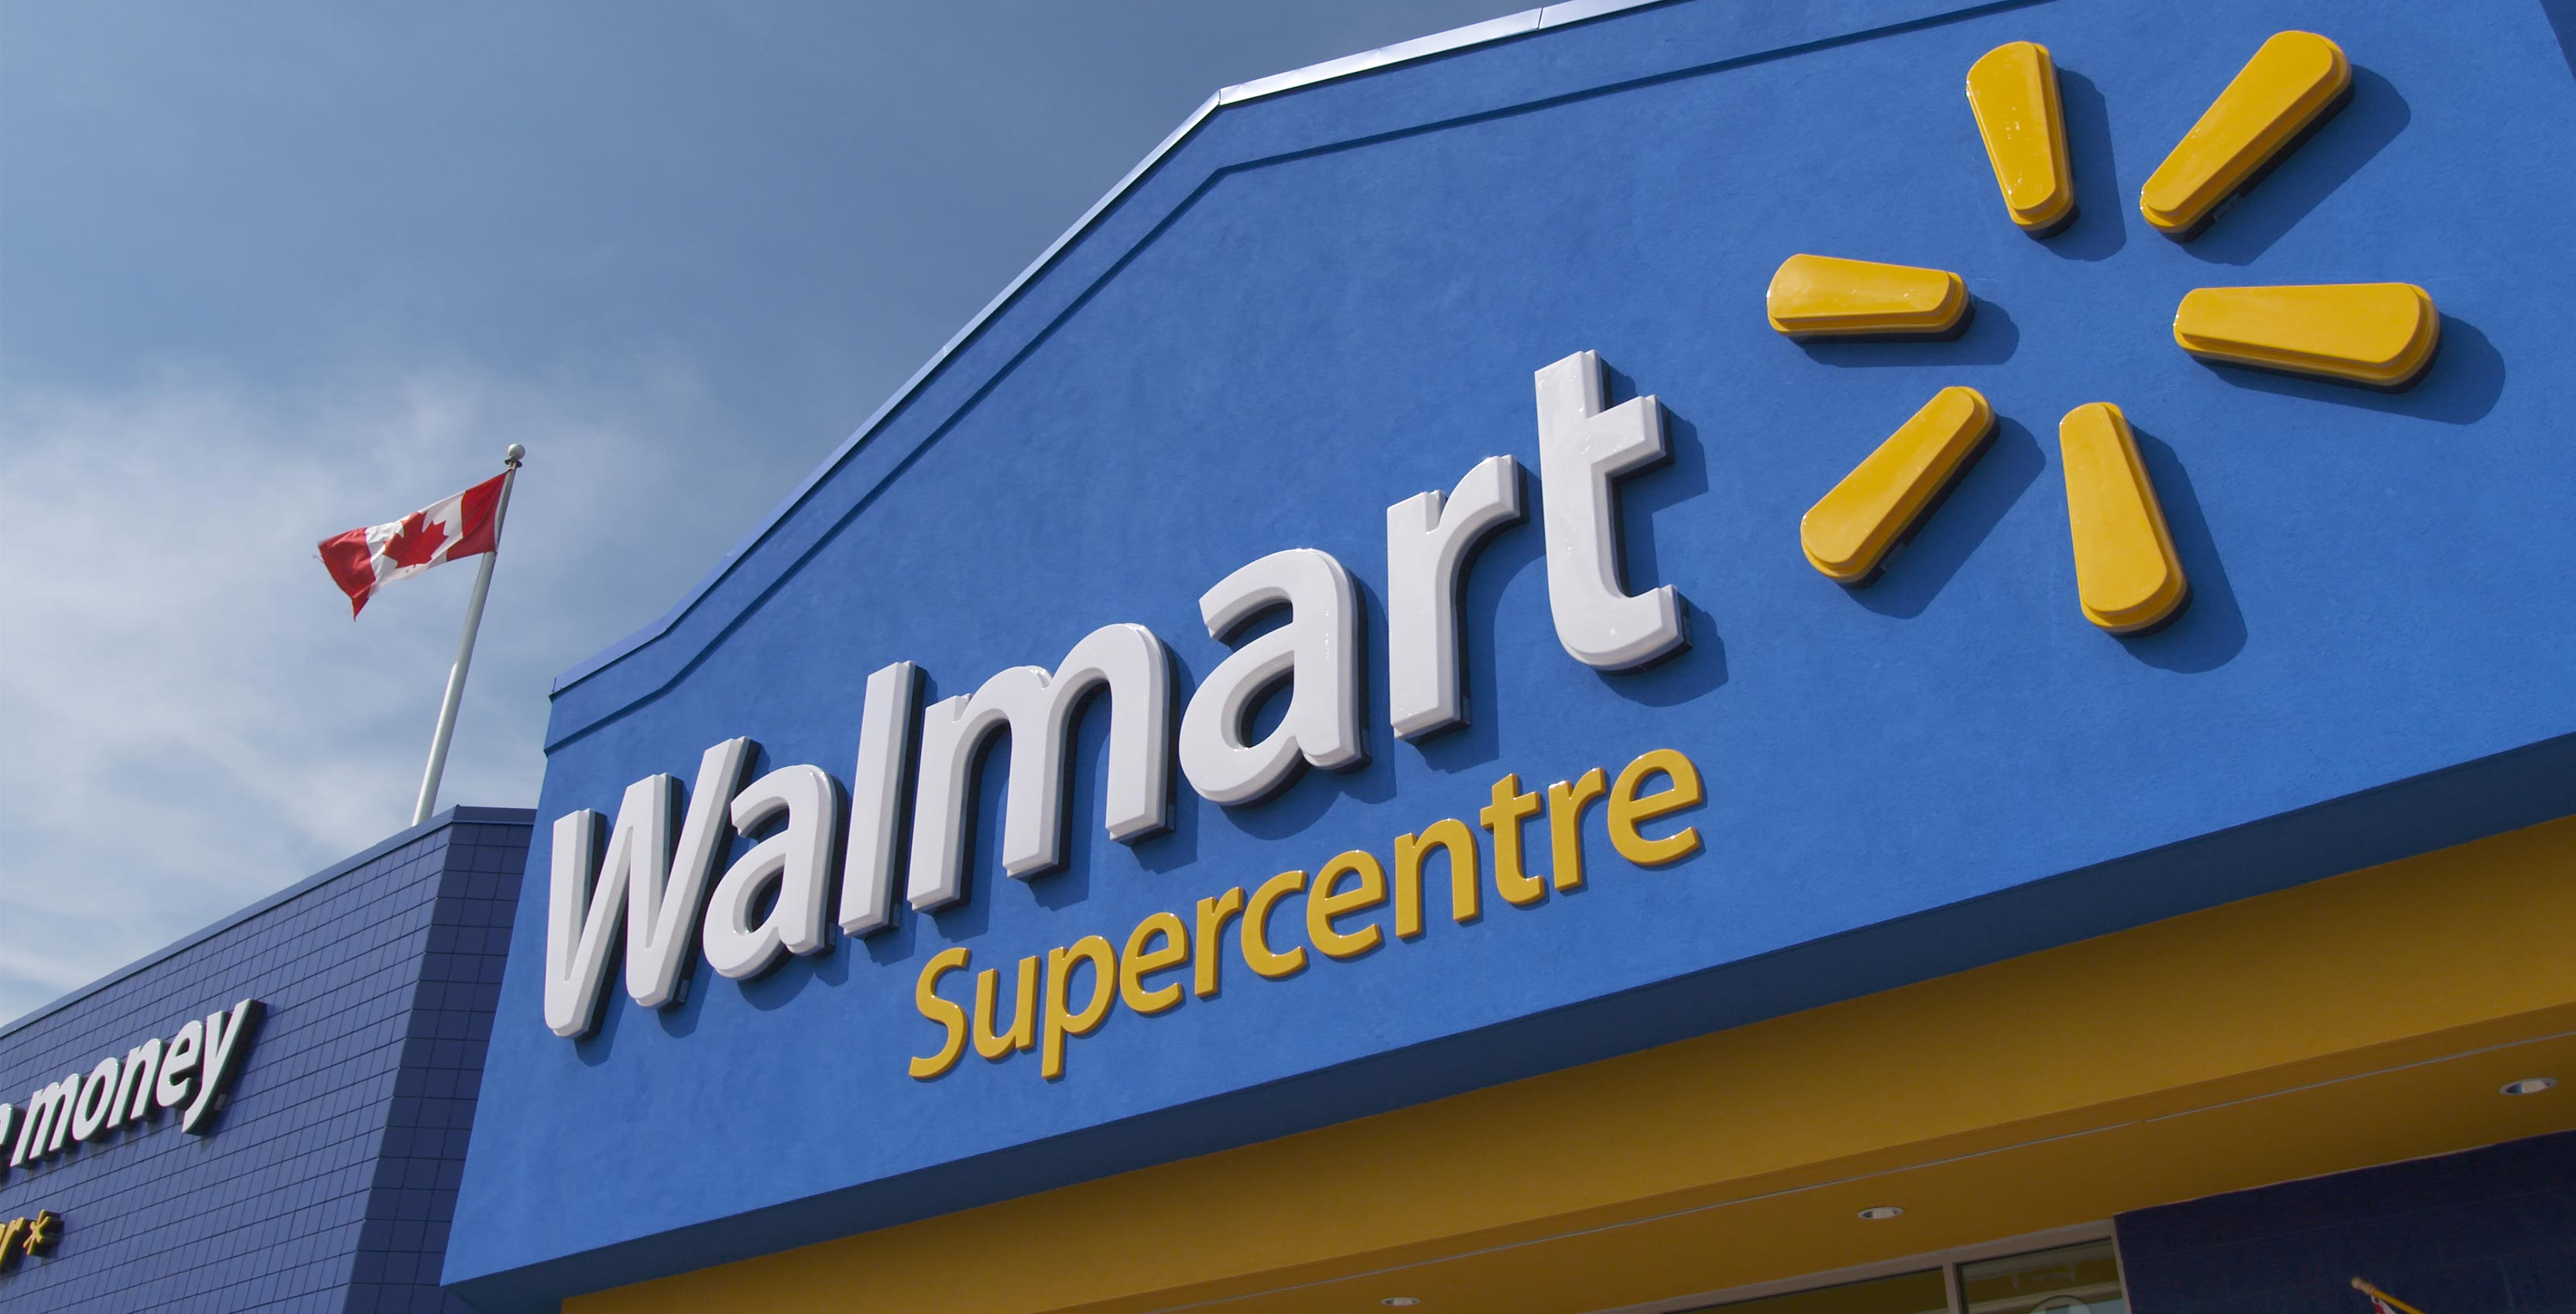 Walmart Canada modernizing its stores to appeal to online